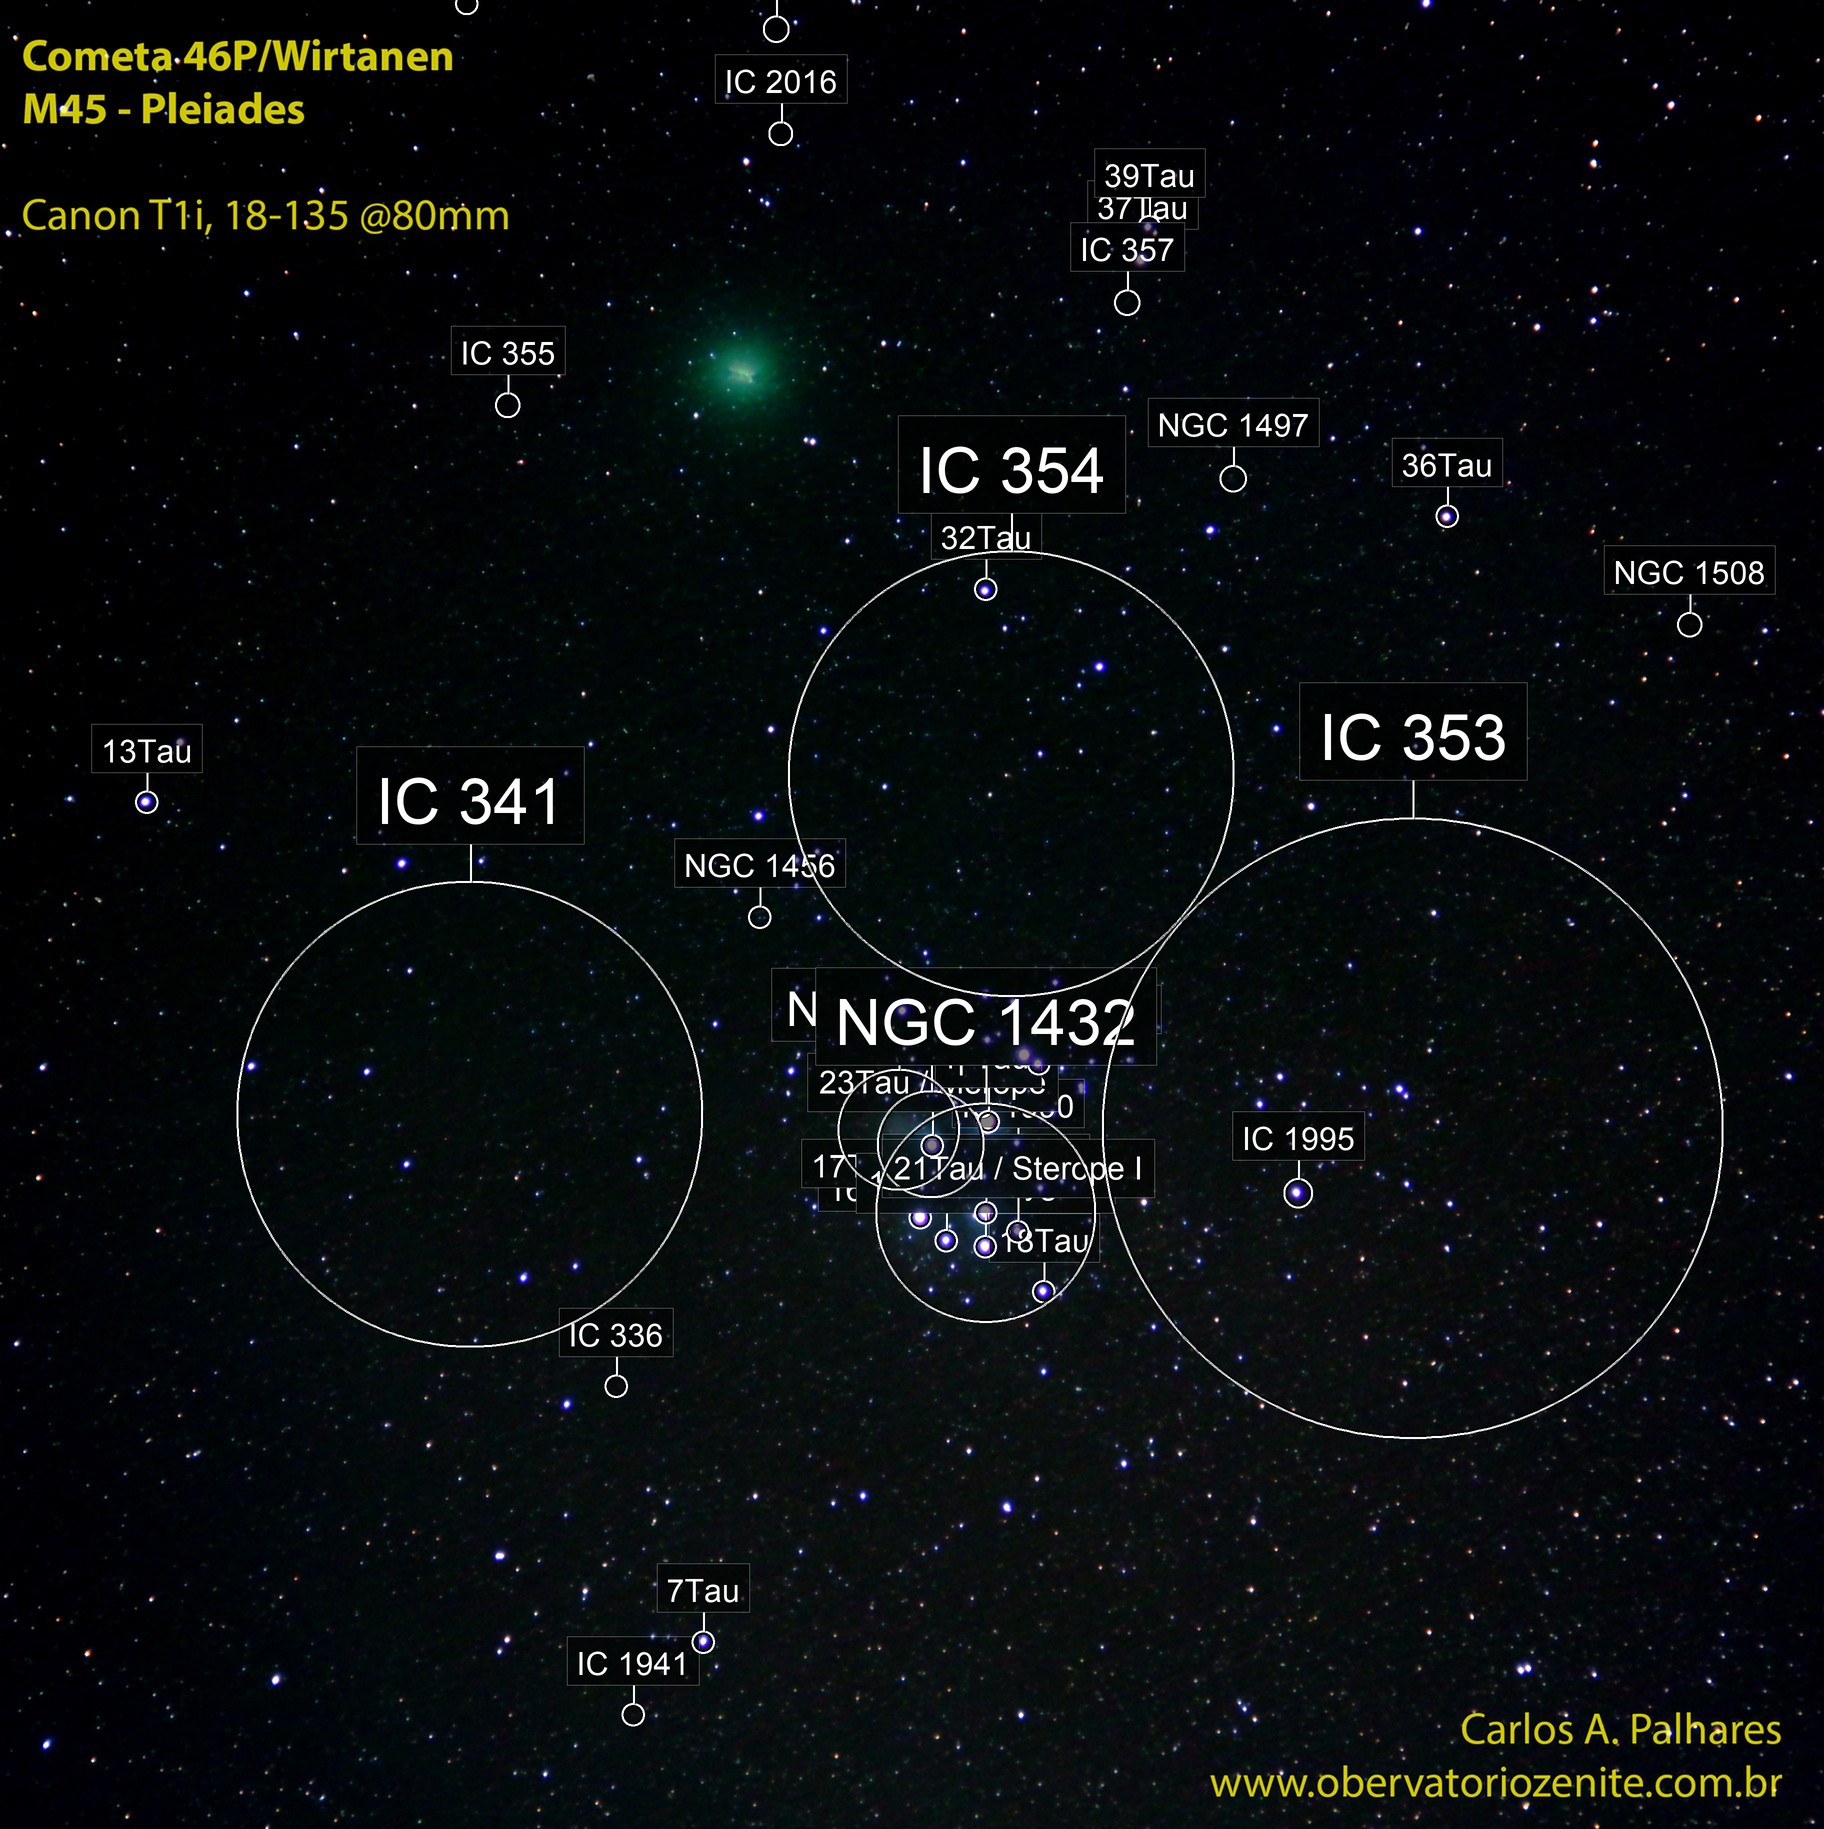 Comet 46P Wirtanen and M45 Pleiades